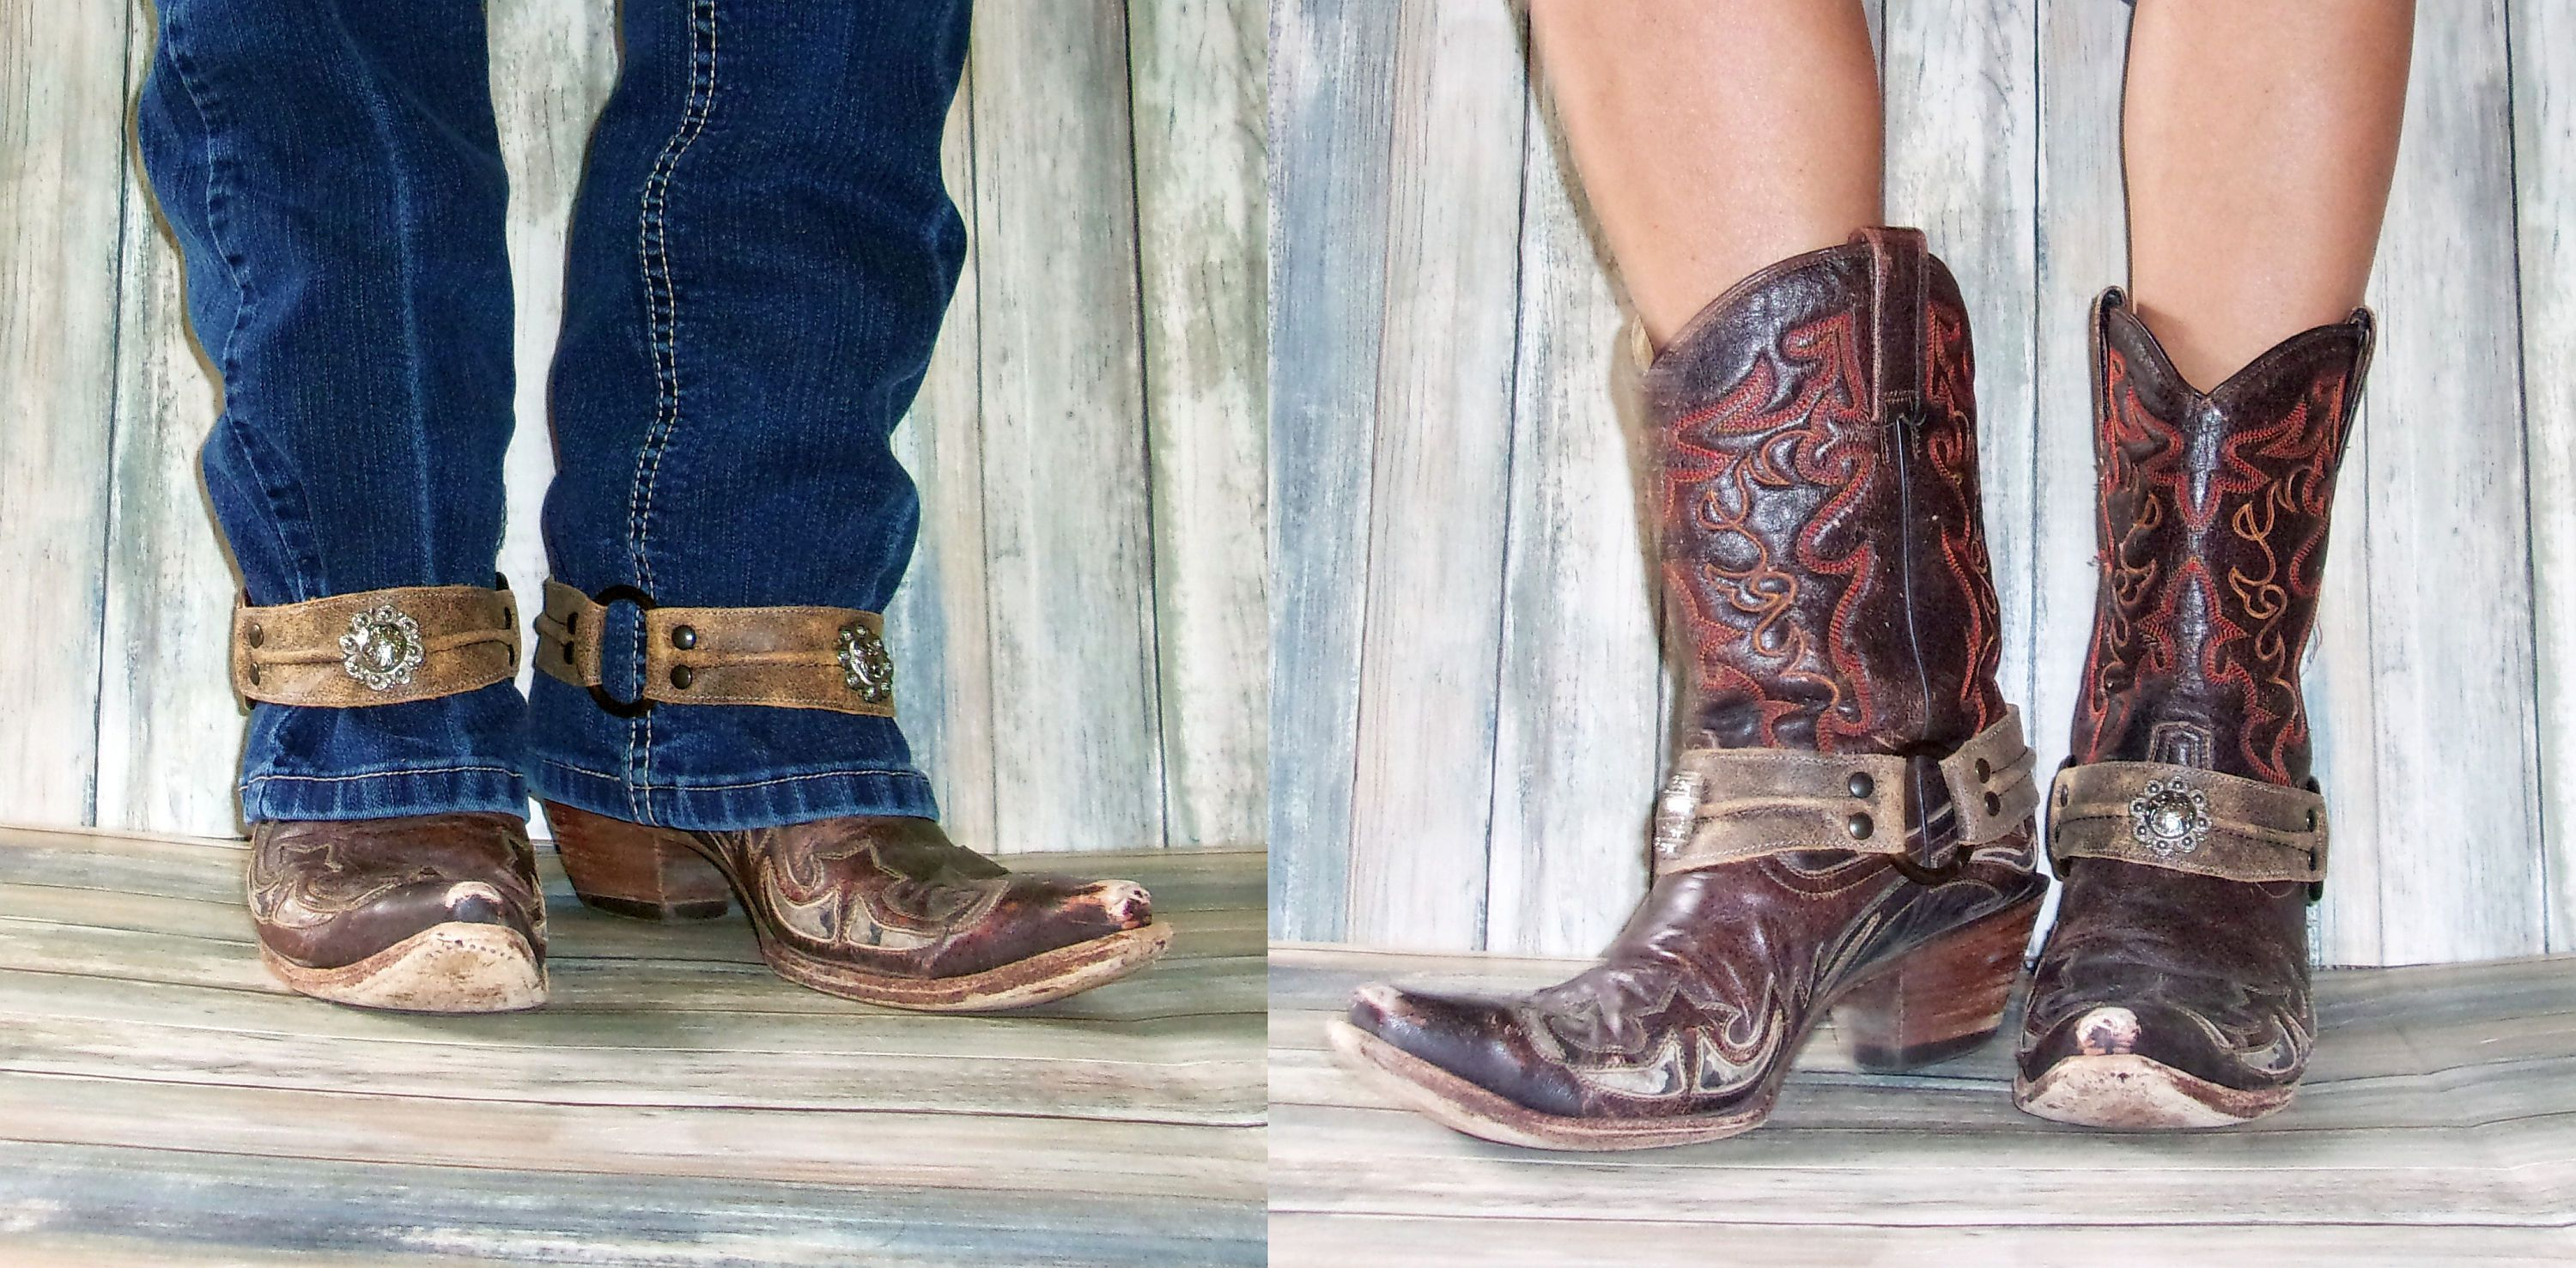 Boot Decor (Single) wr40 - handcrafted handbags - cowboy boot purses - western purses - western handbags - western conceal carry purses - unique swing arm bags - Chris Thompson Bags